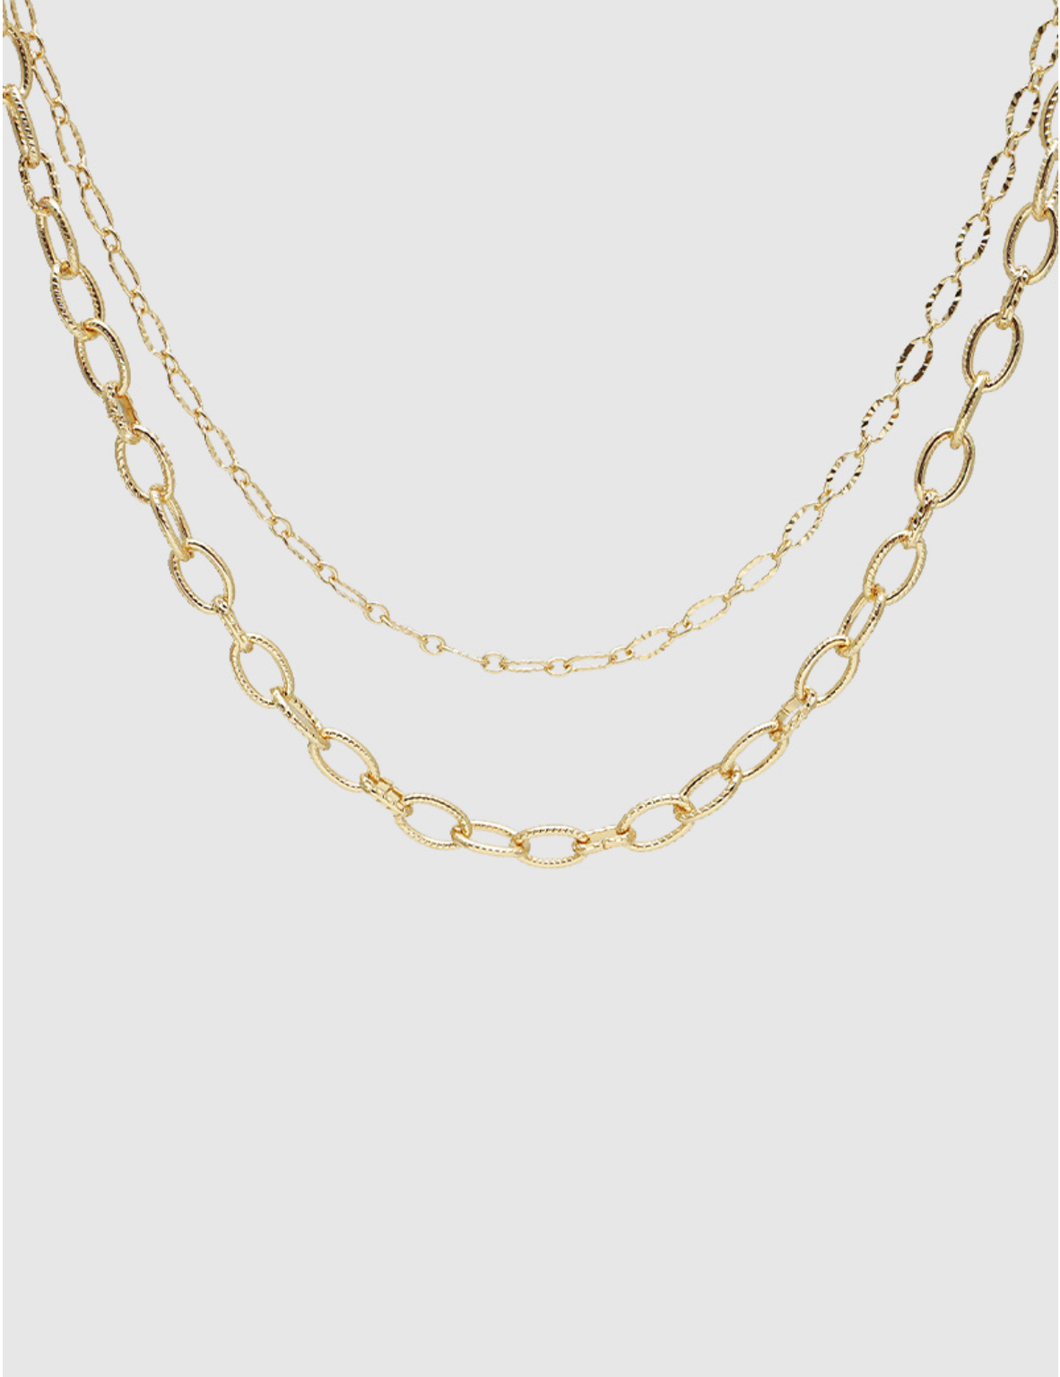 The Emily Gold Chain Chocker Necklace